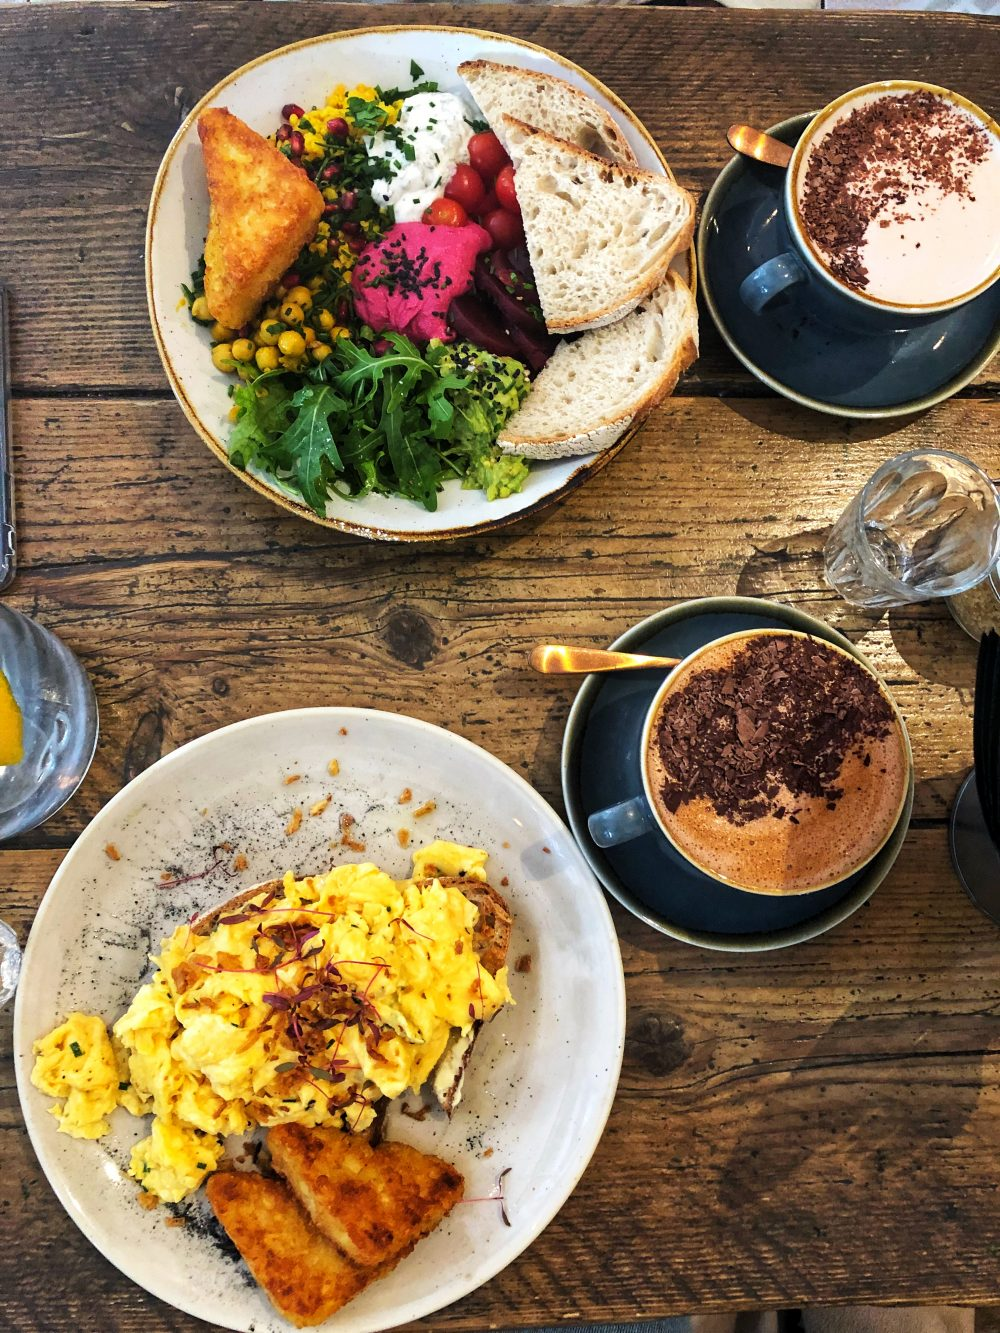 6 Cities That You Must Travel To Just For The Food: London